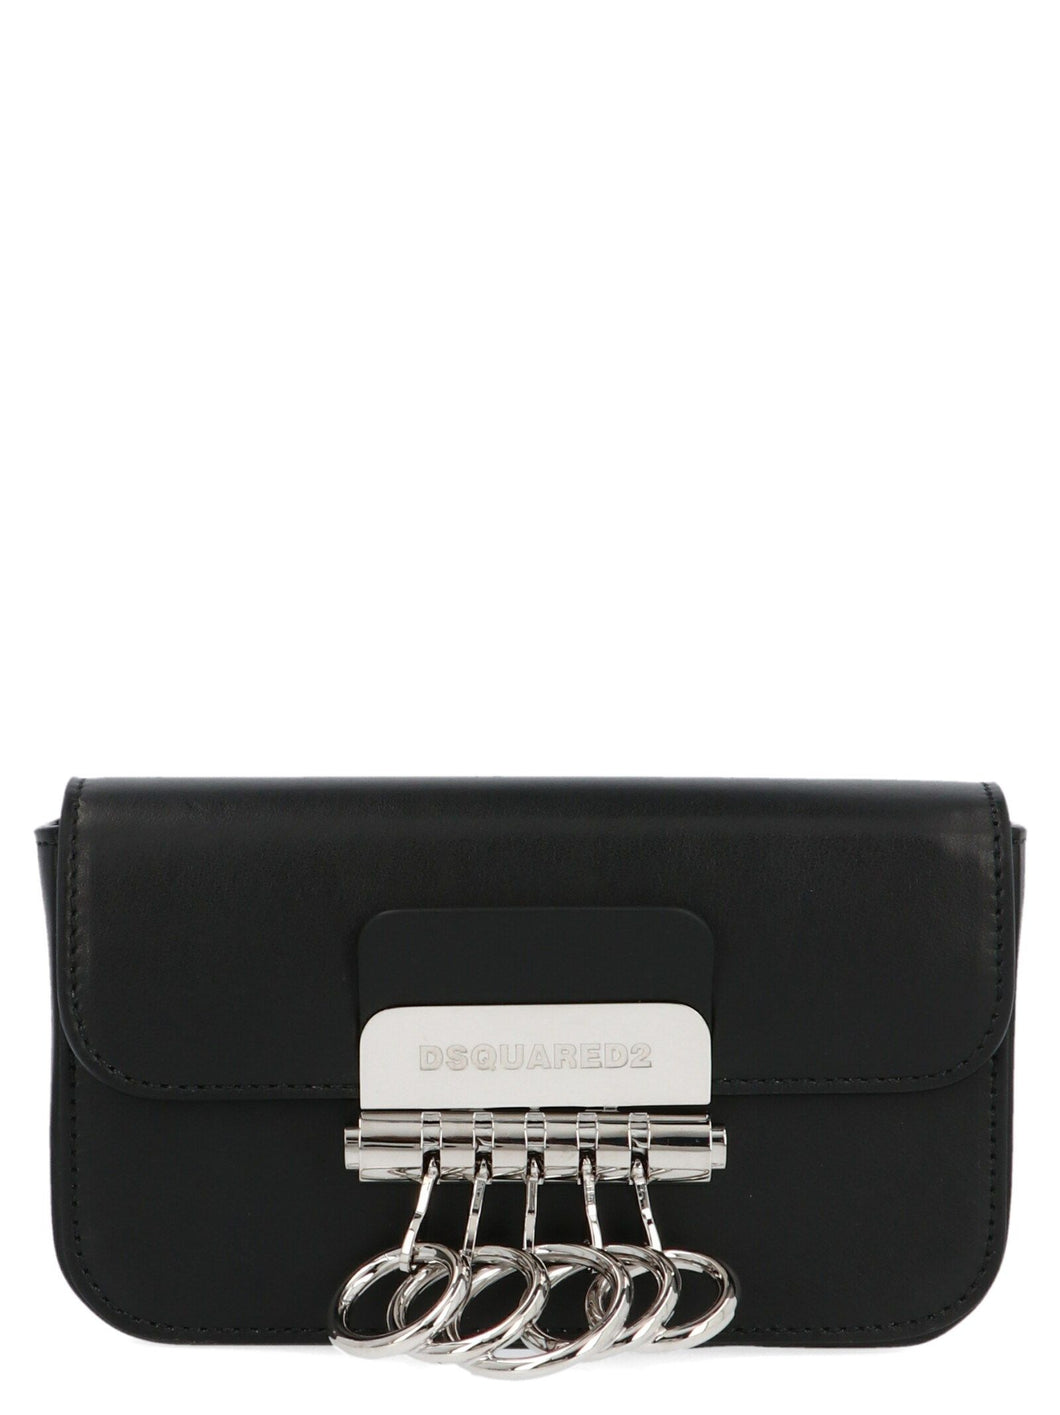 DSQUARED2 ring detail belt bag